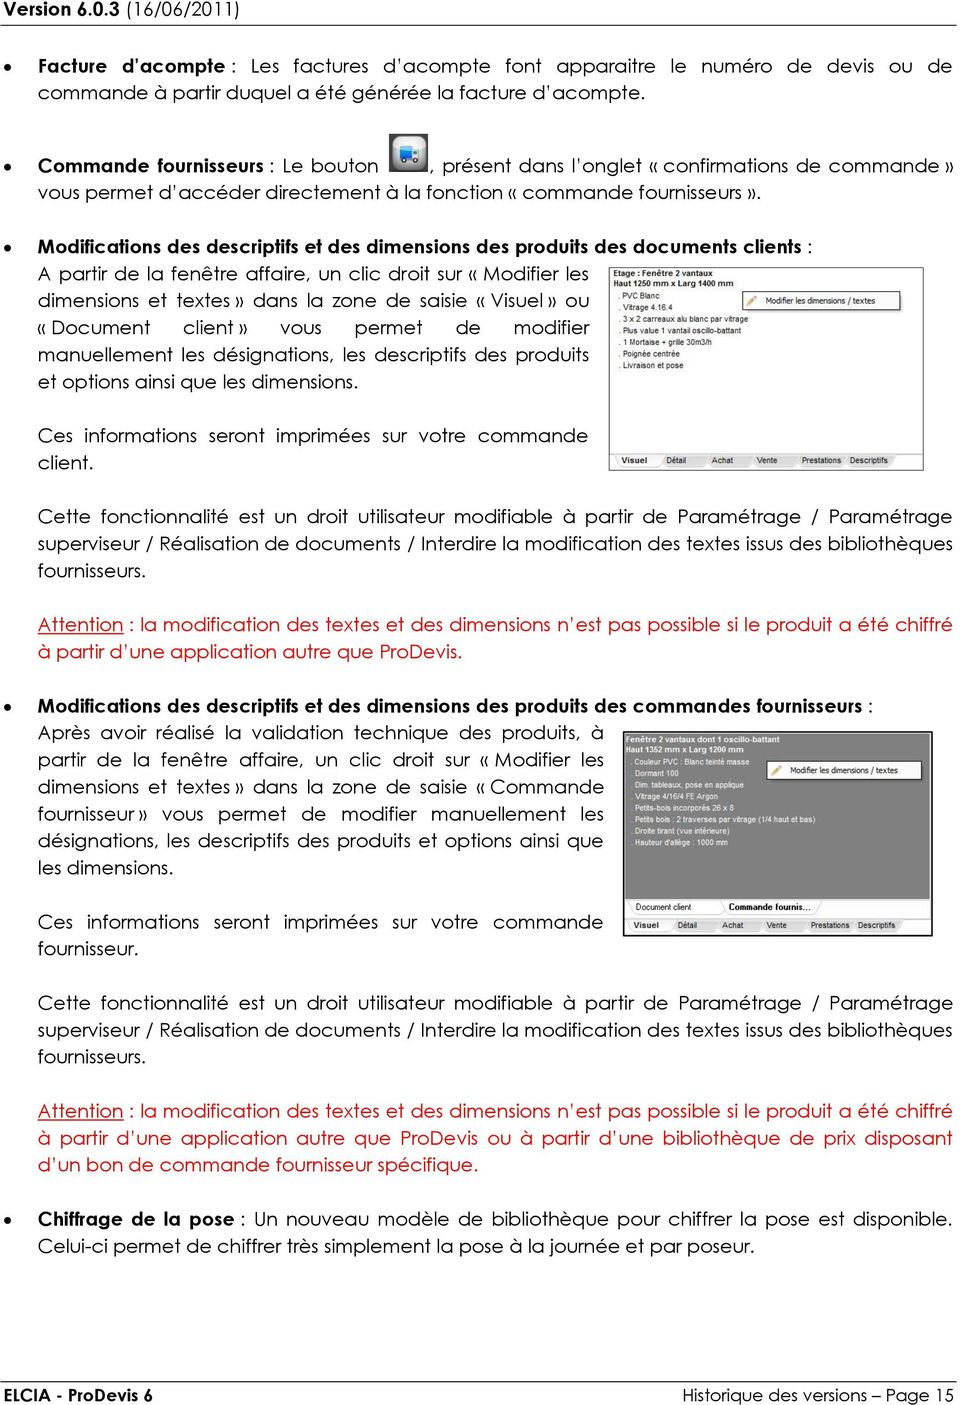 Modifications des descriptifs et des dimensions des produits des documents clients : A partir de la fenêtre affaire, un clic droit sur «Modifier les dimensions et textes» dans la zone de saisie